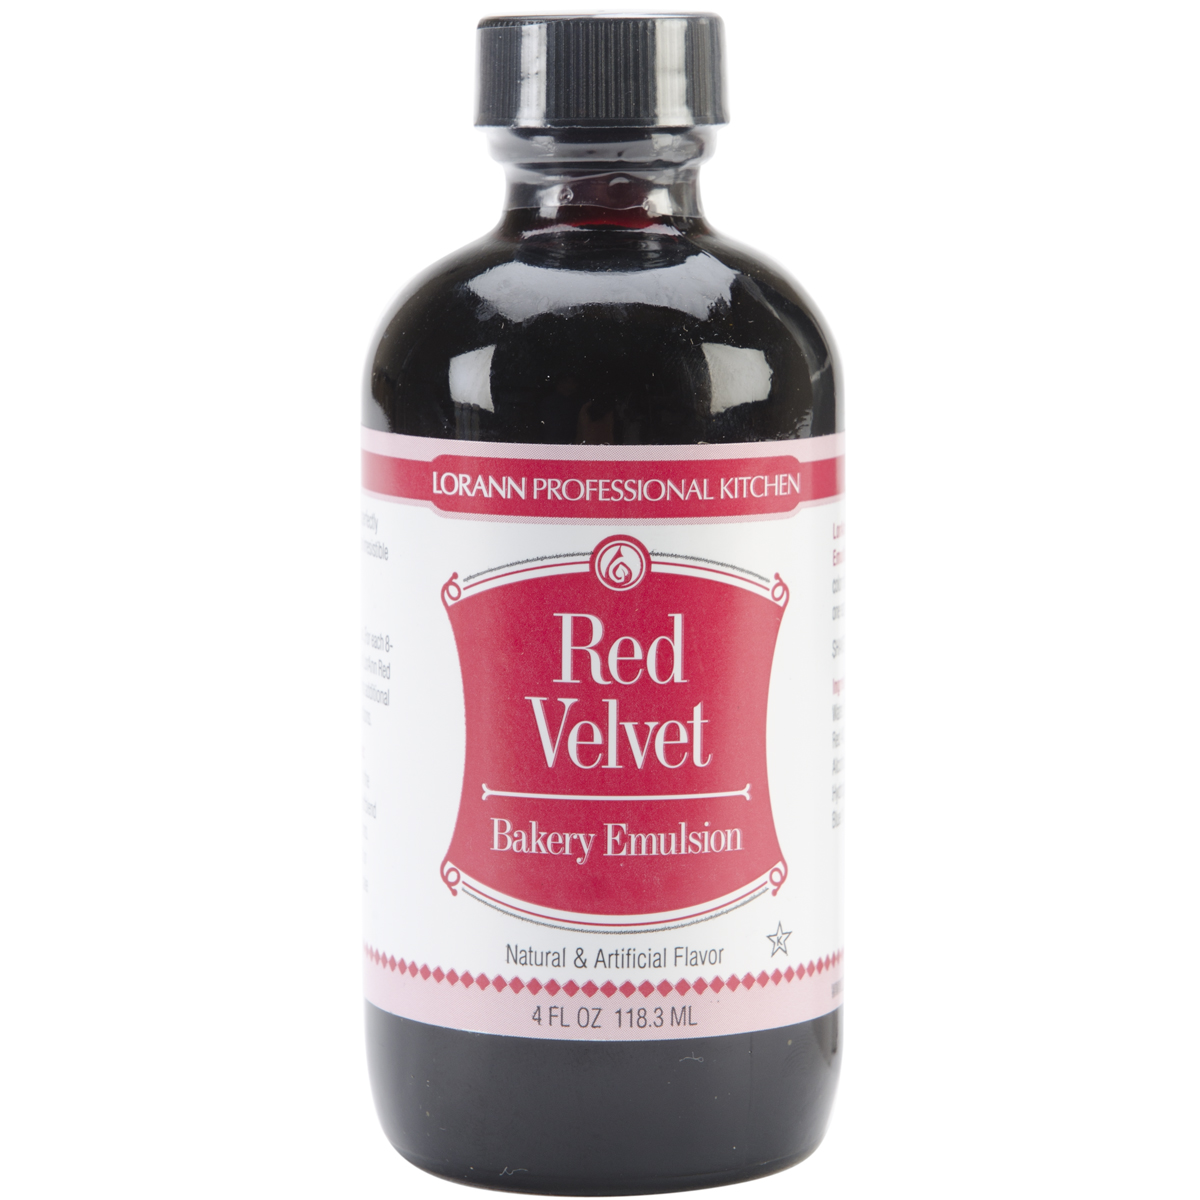 Bakery Emulsions Natural & Artificial Flavor 4oz Red Velvet Cake